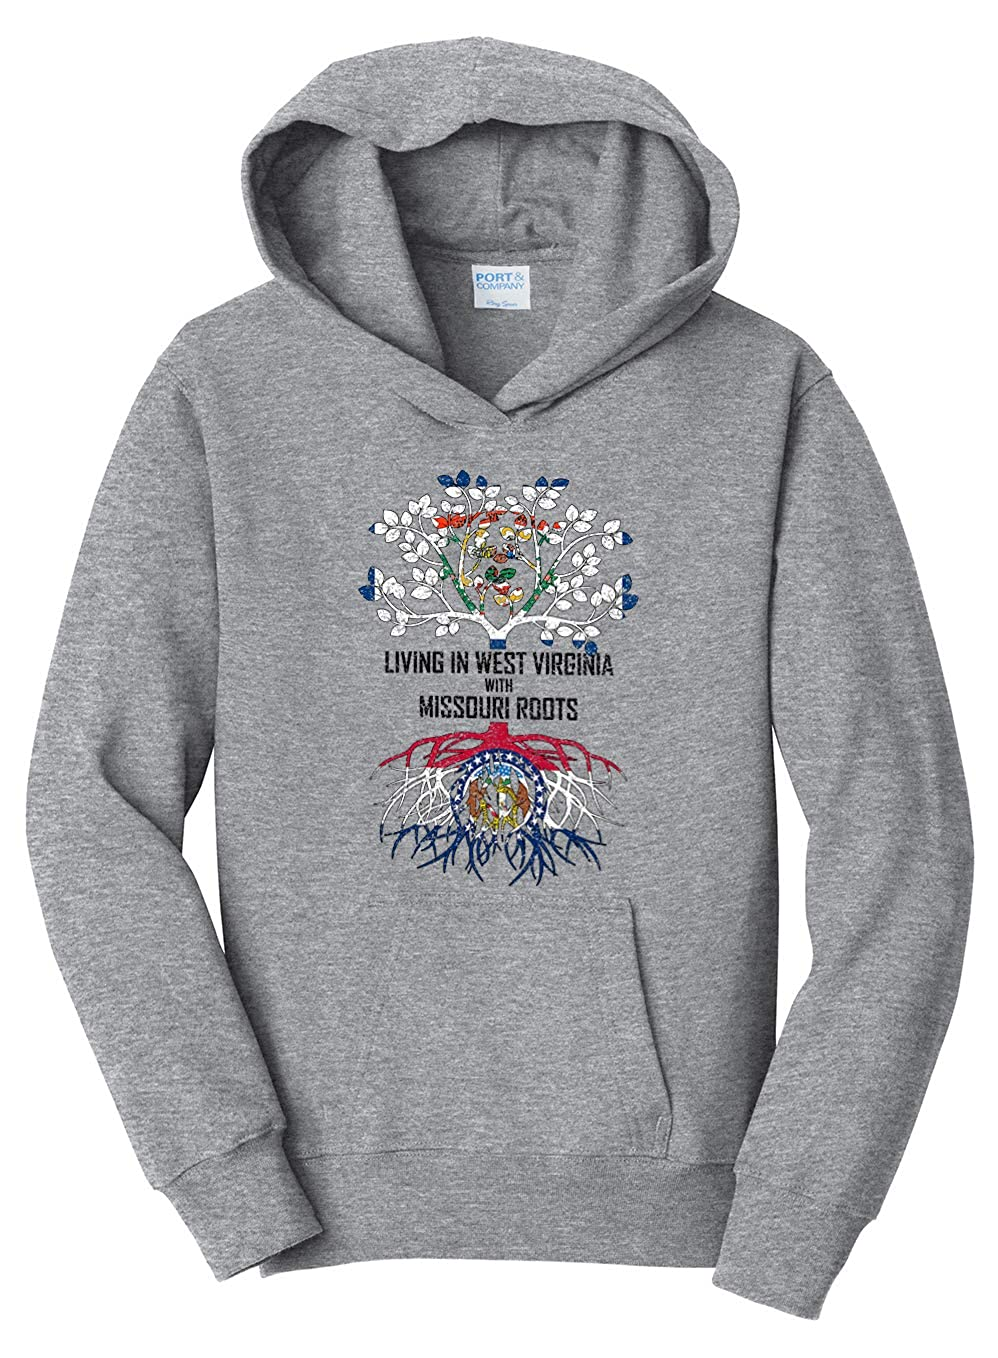 Tenacitee Girls Living in West Virginia with Missouri Roots Hooded Sweatshirt